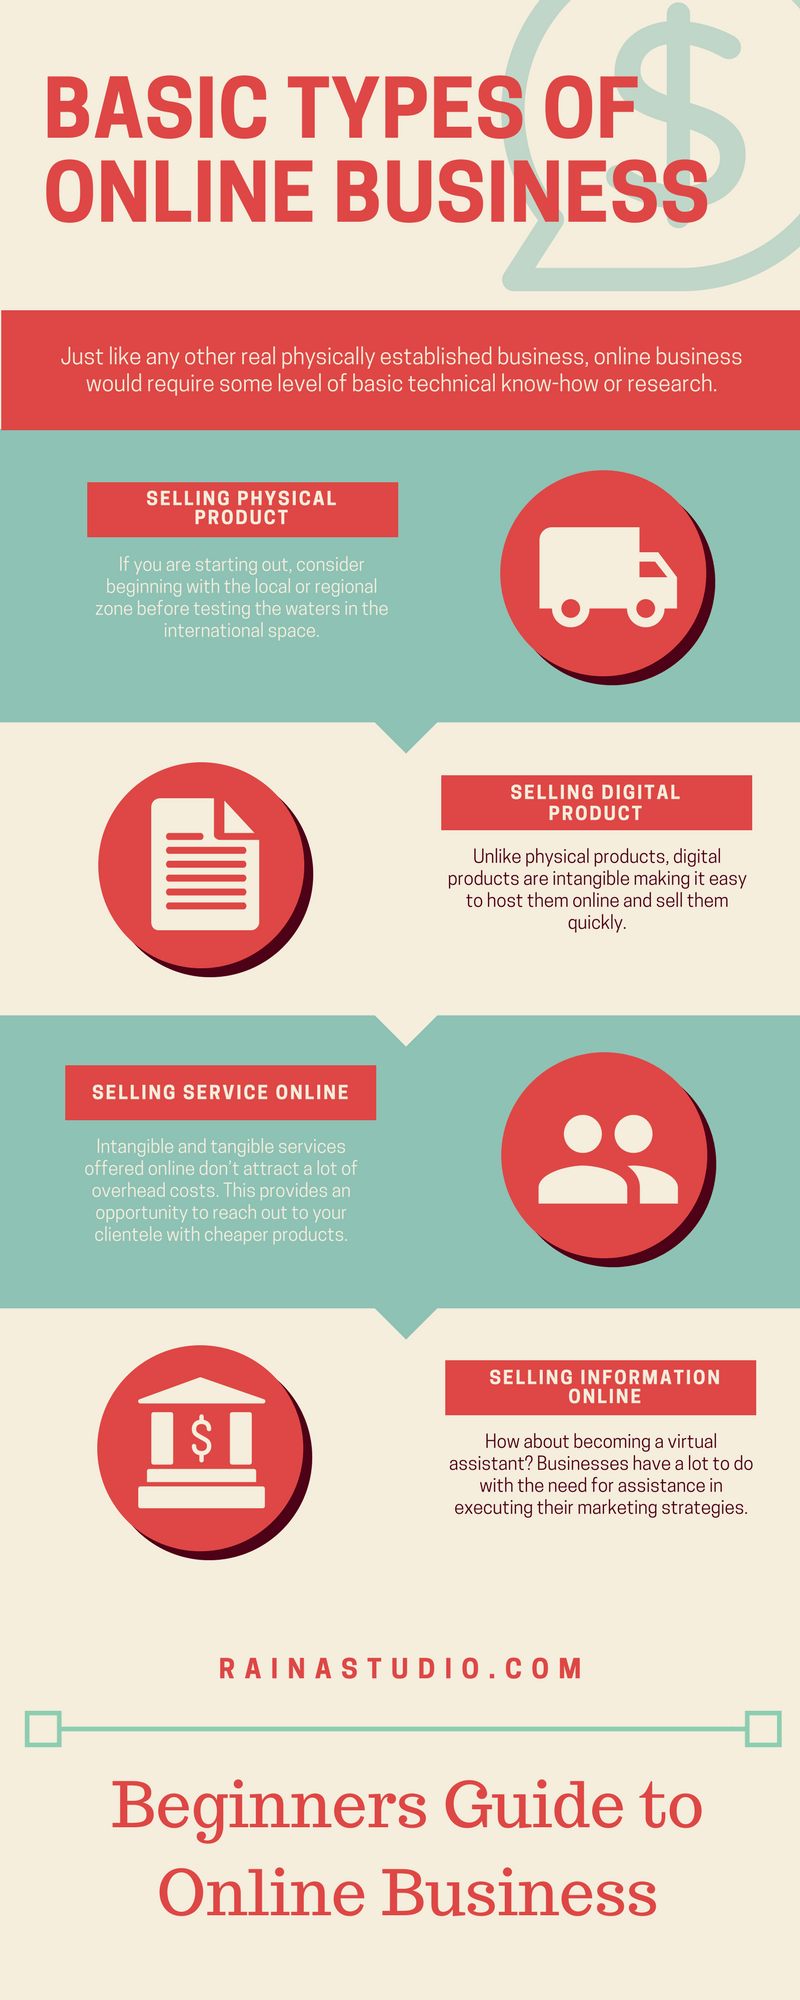 Basic Types of Online Business